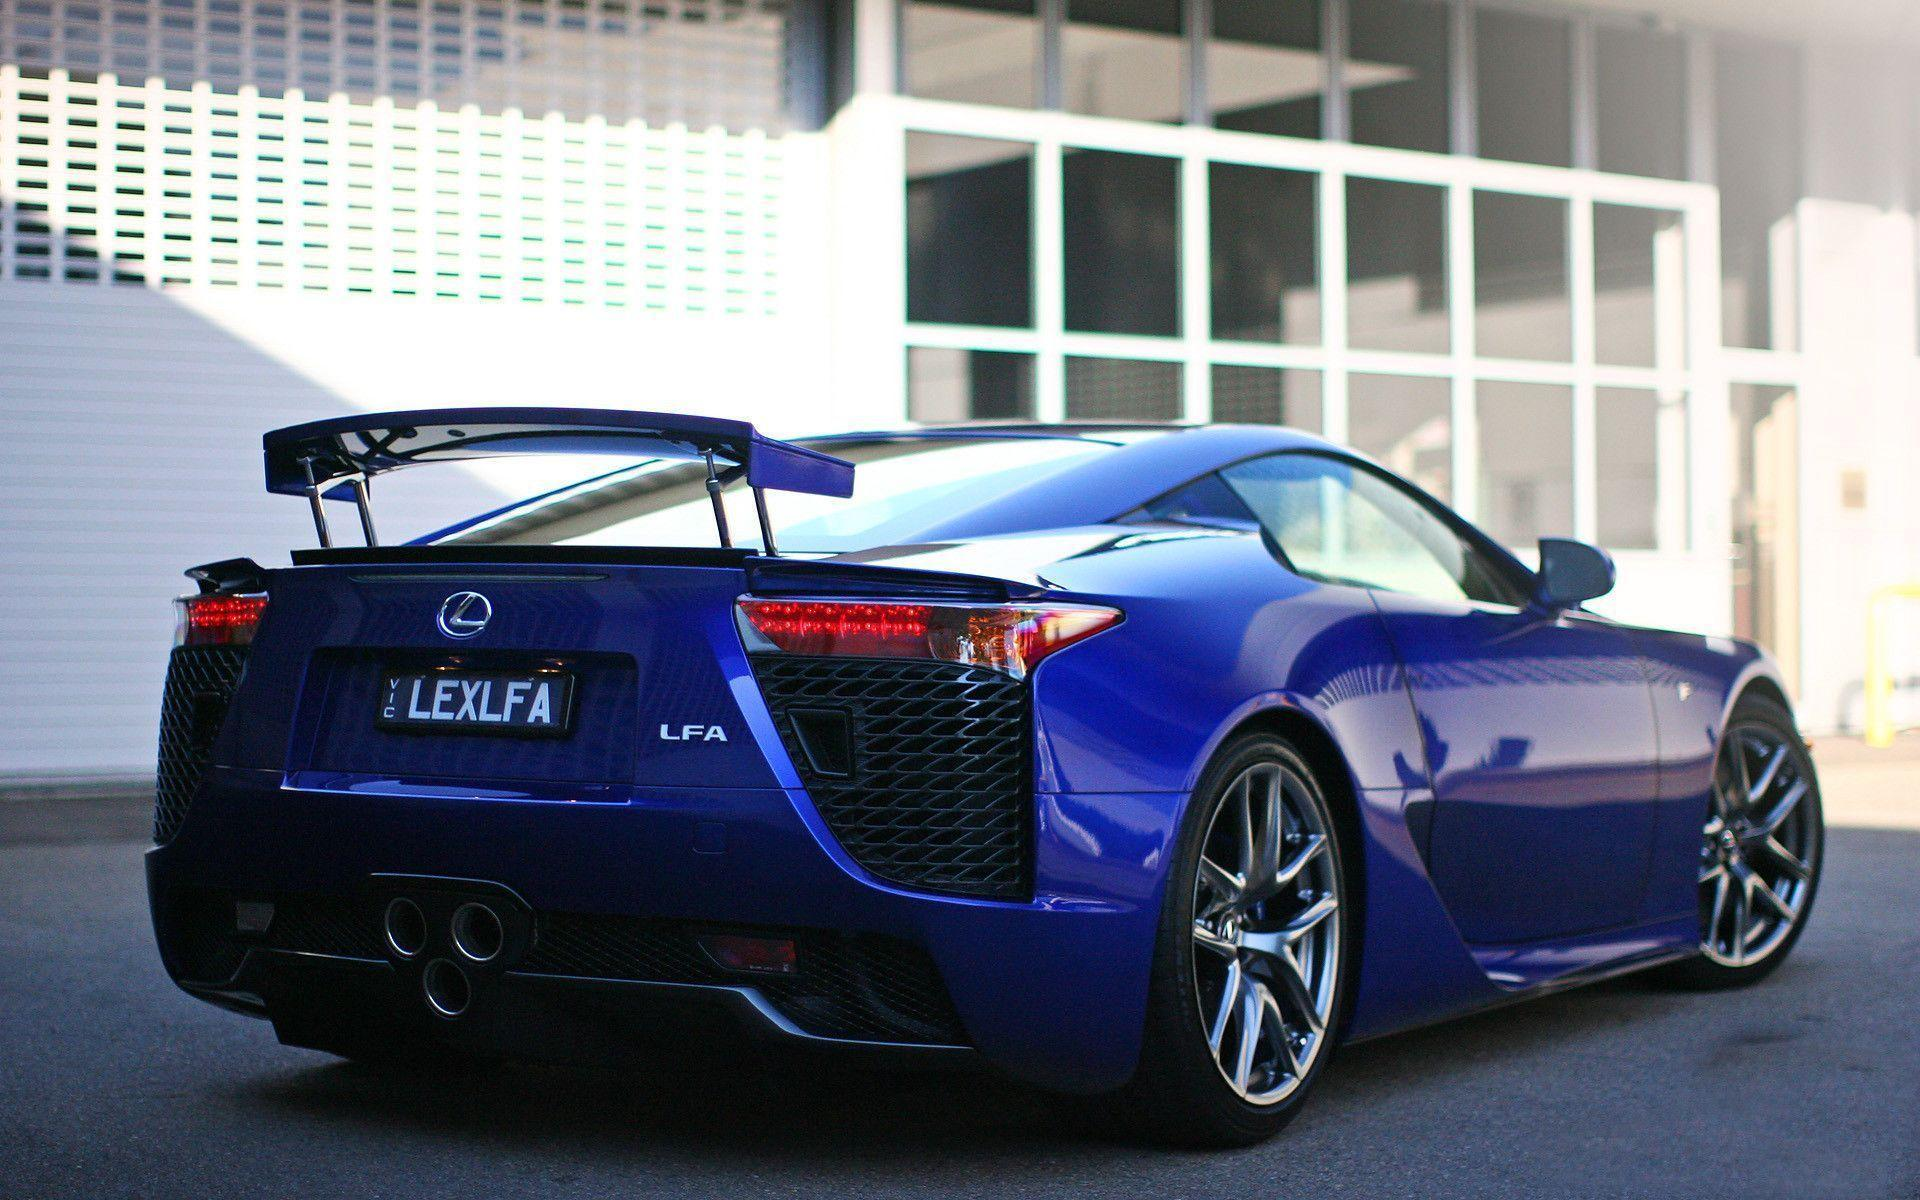 wallpapers lexus lfa - photo #7